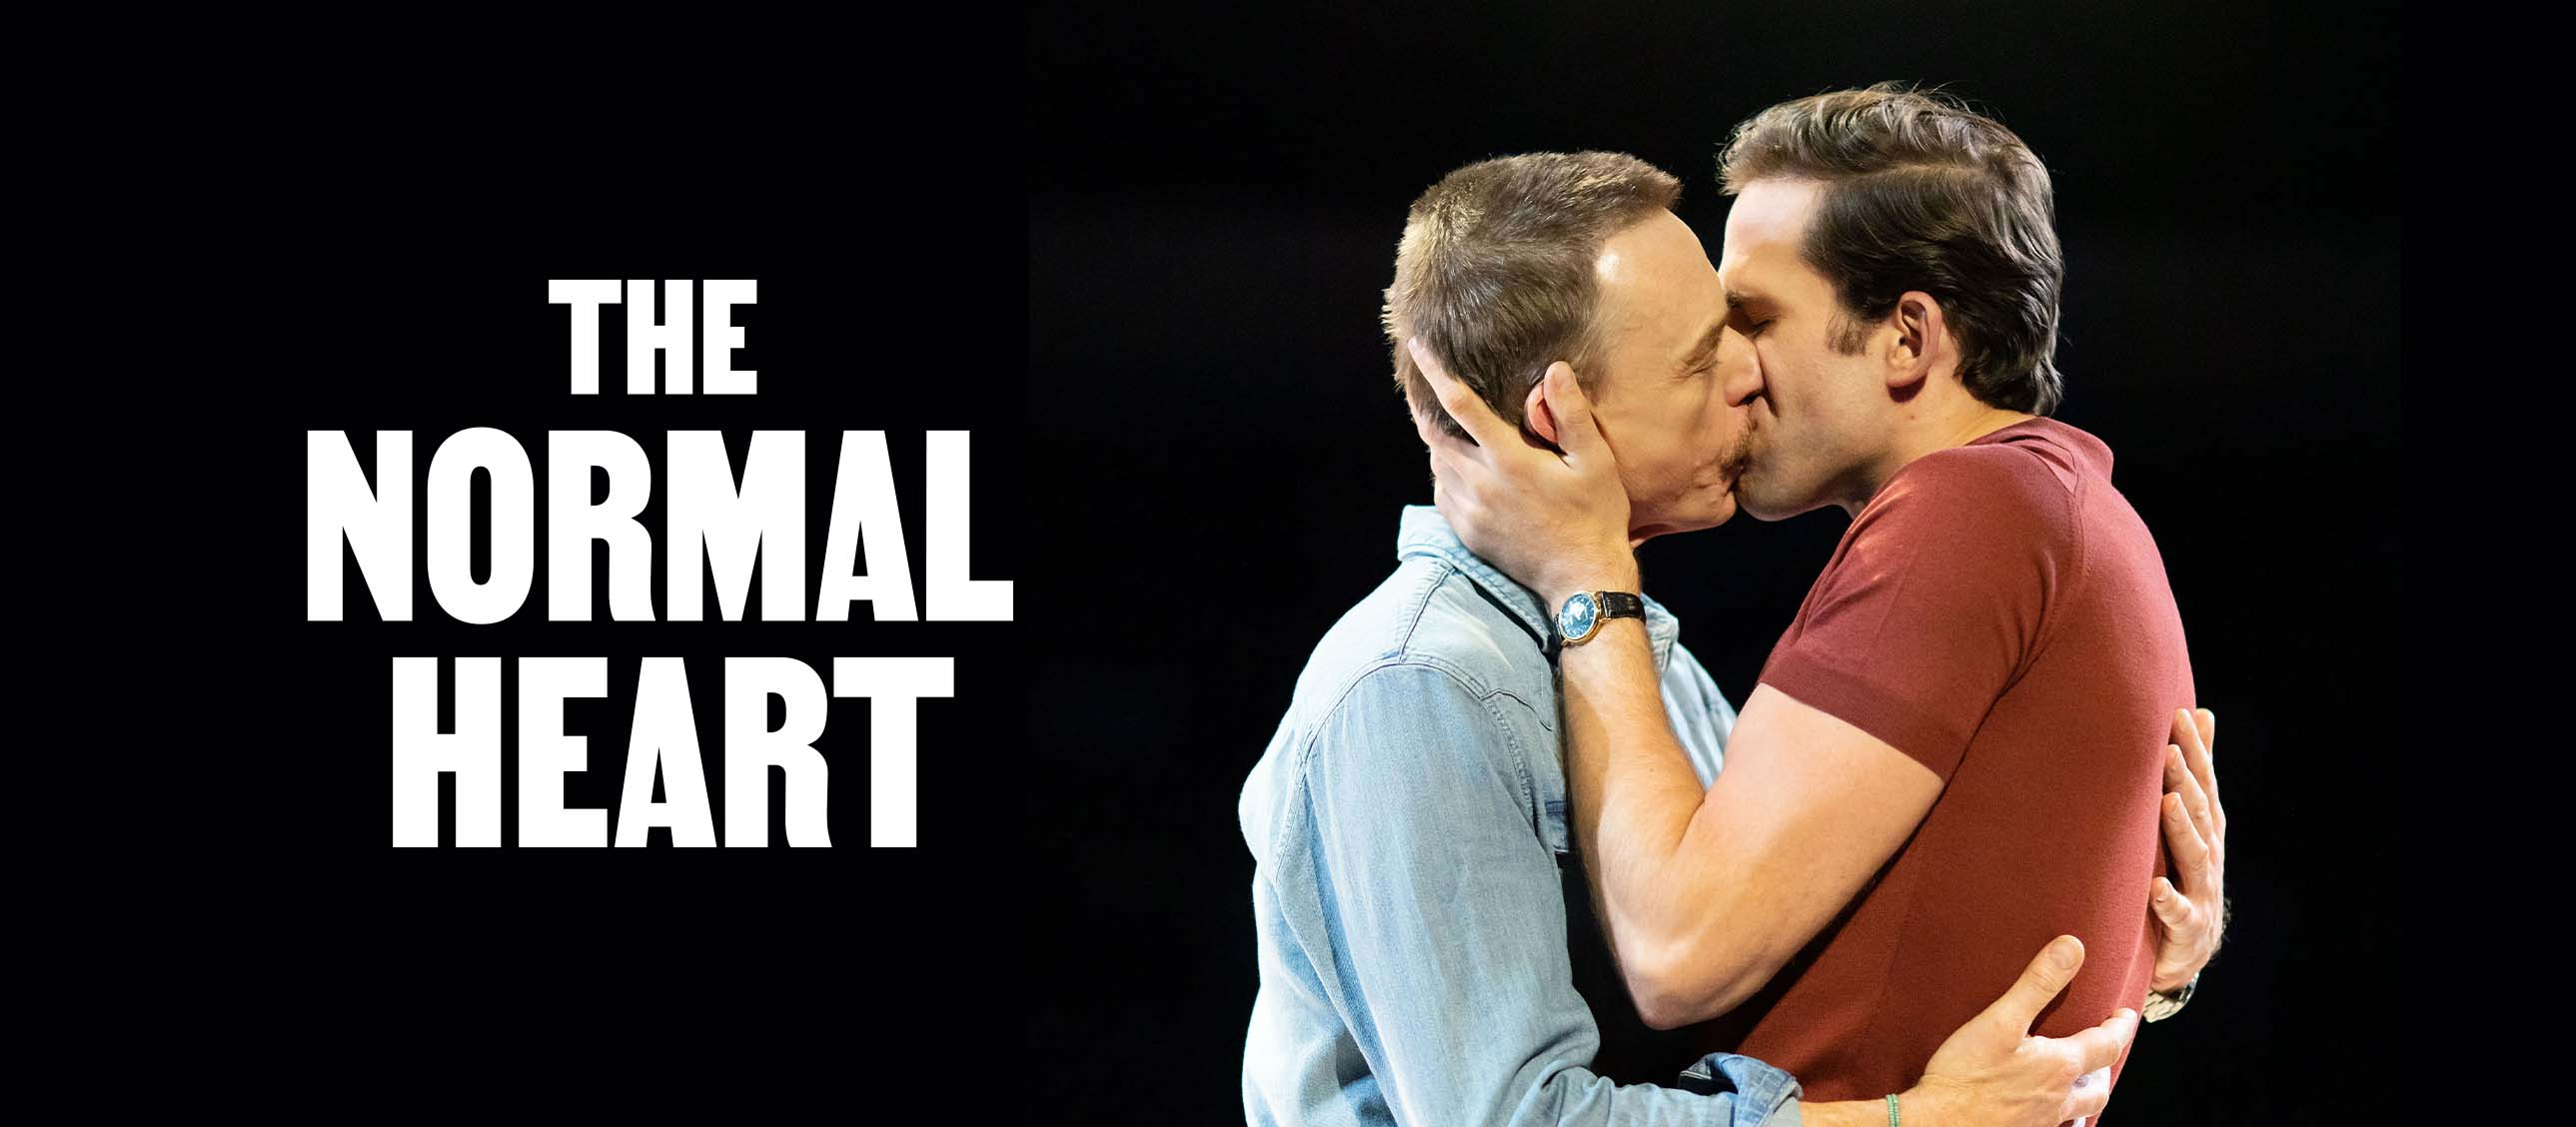 The Normal Heart - Dino Fetscher and Ben Daniels production image